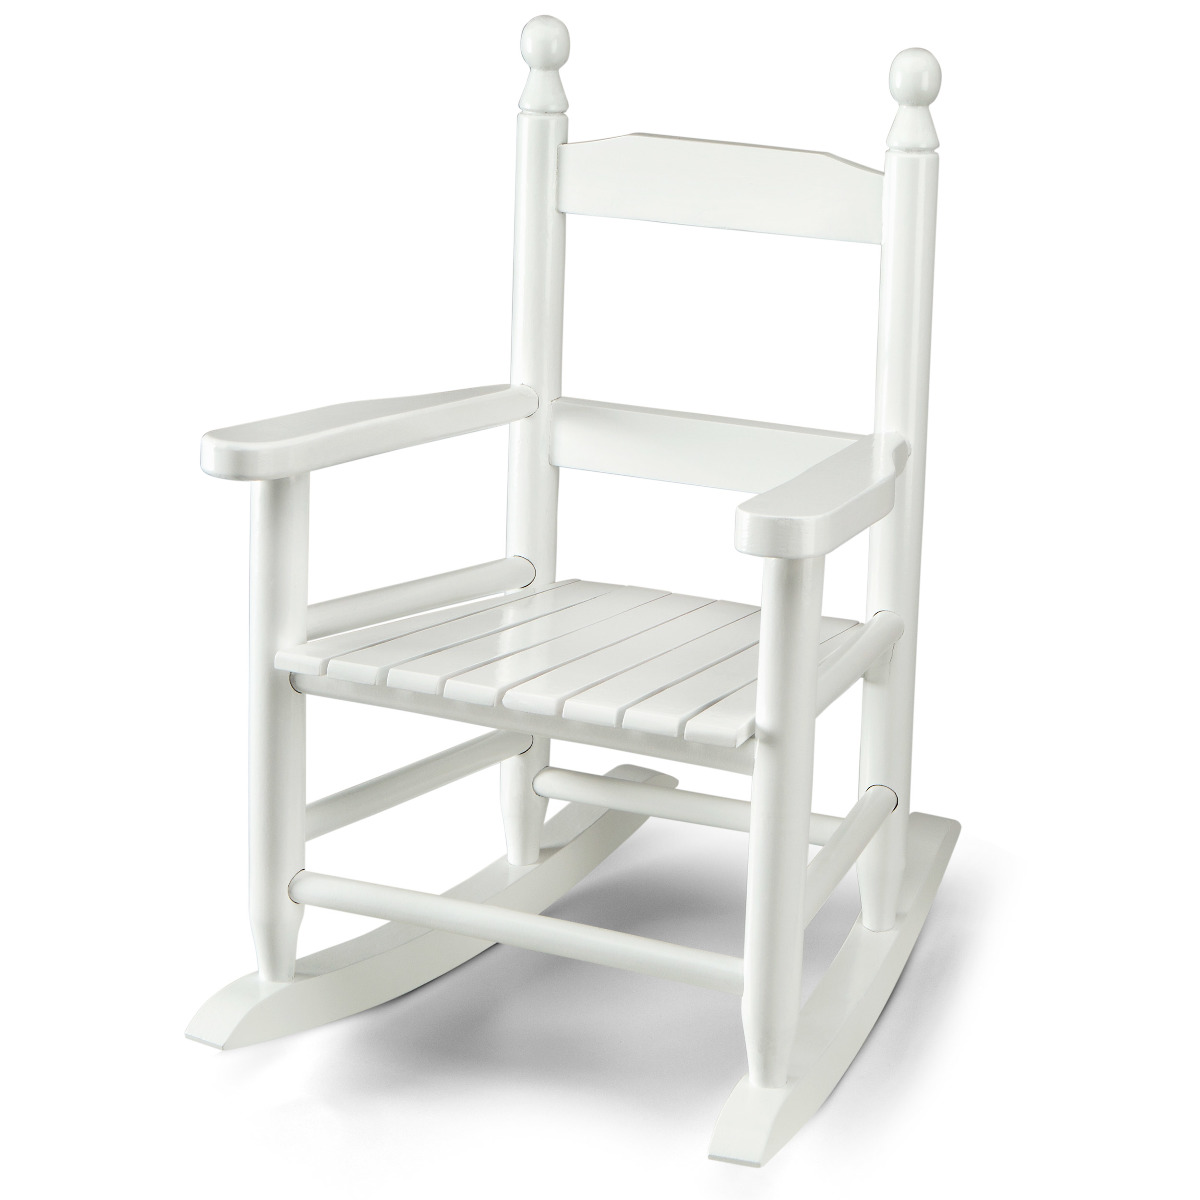 Wooden rocking chair for kids white ebay for White kids chair